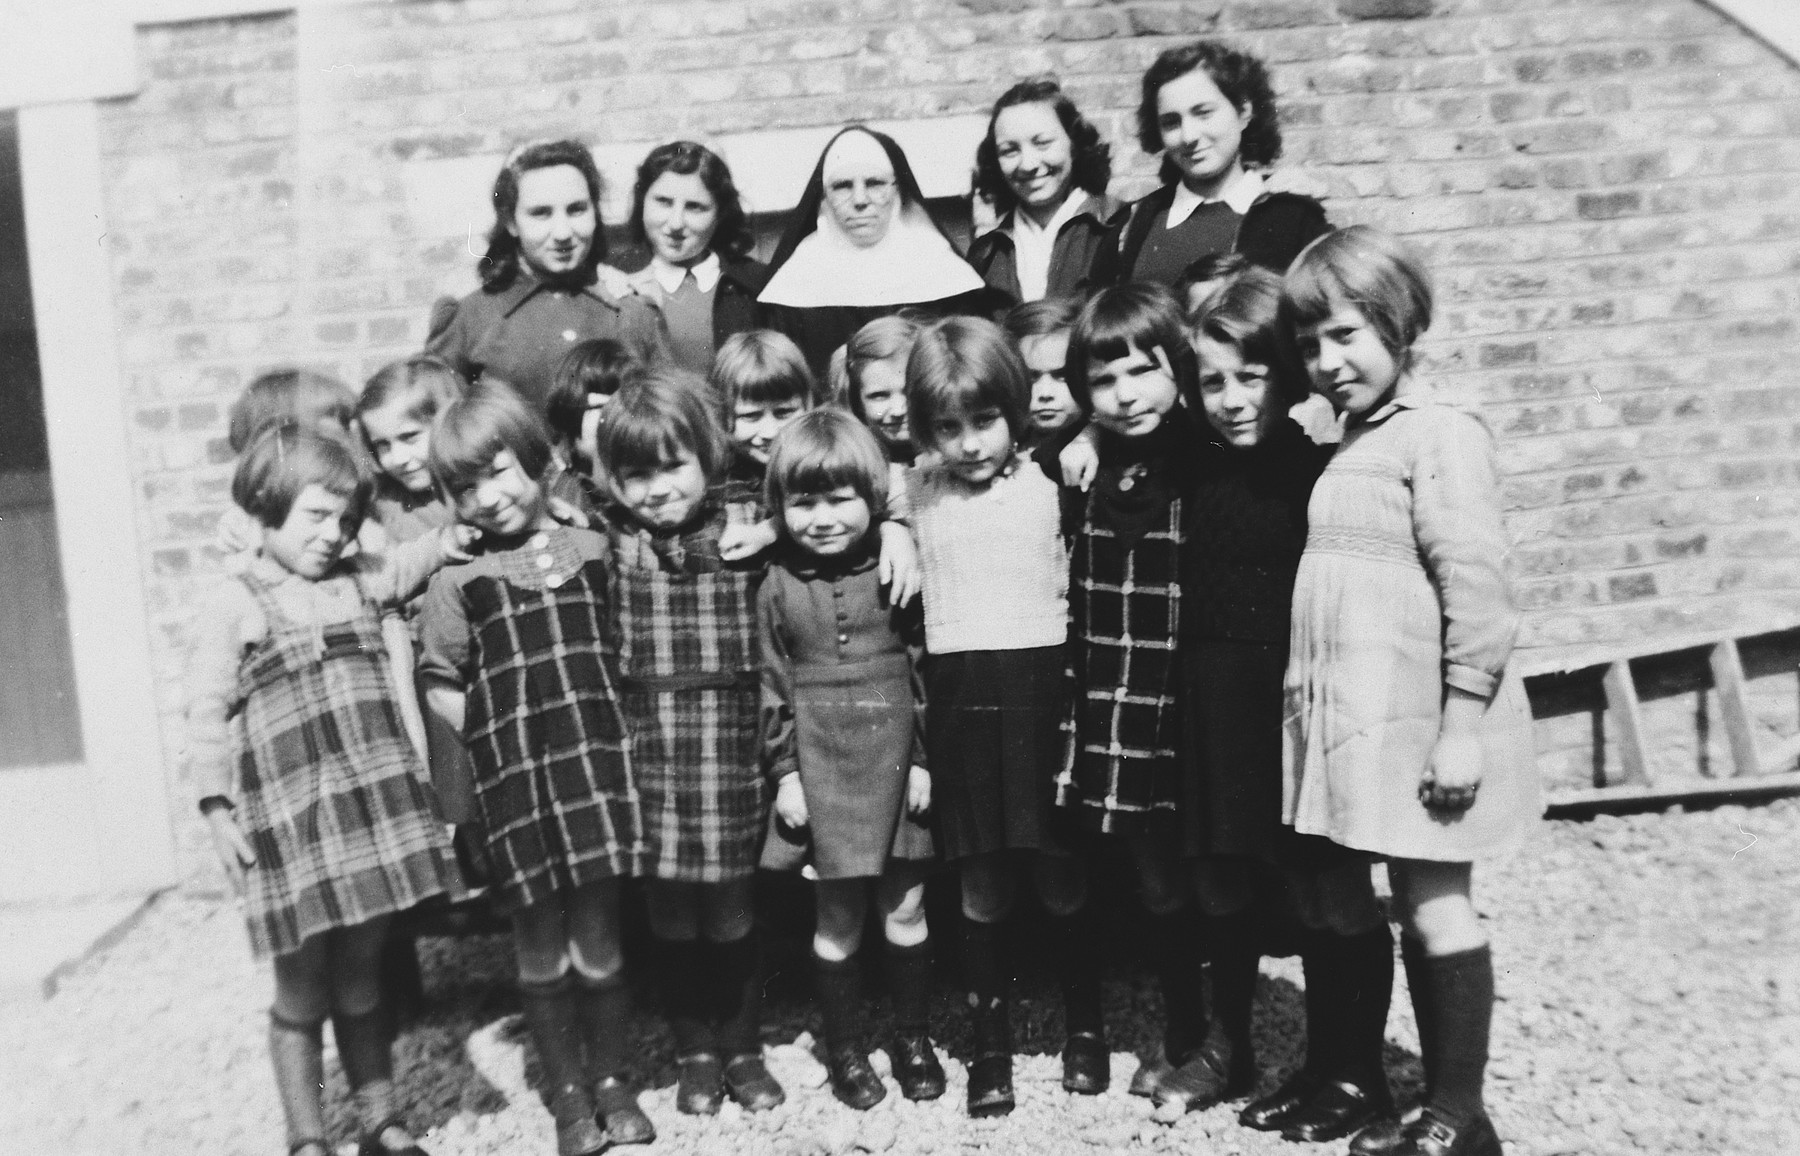 Two Jewish sisters pose with the nun who had hidden them and a group of Belgian children in the Couvent de la Misericorde in Louvain.  Pictured in the back row are Cecile and Anny Rojer and Sister Clotilde.